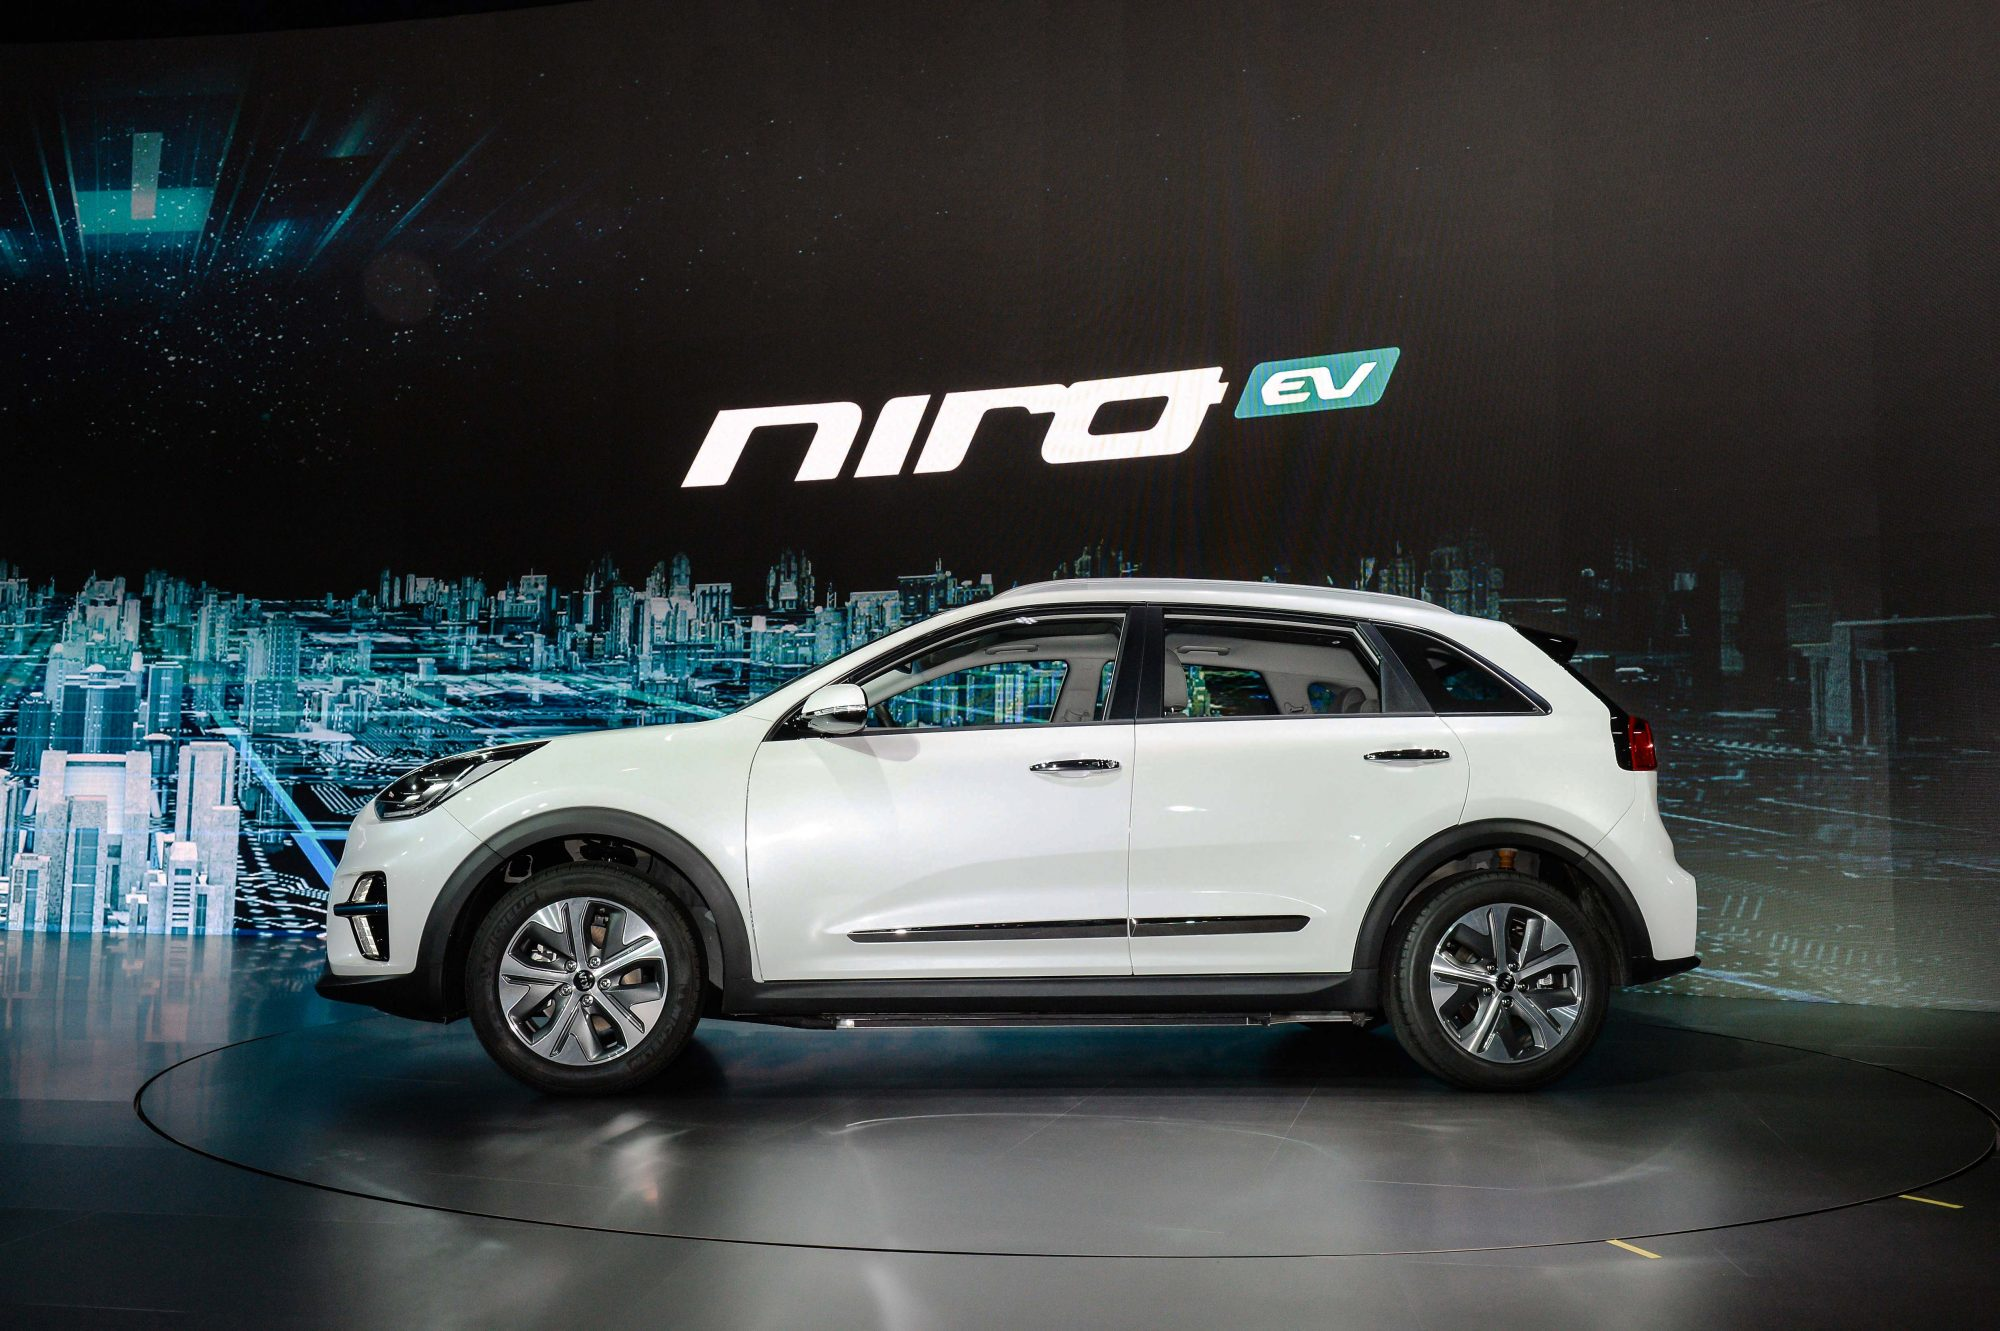 crossover kia niro ev e mobilit t mit wenig kompromissen gas junky. Black Bedroom Furniture Sets. Home Design Ideas